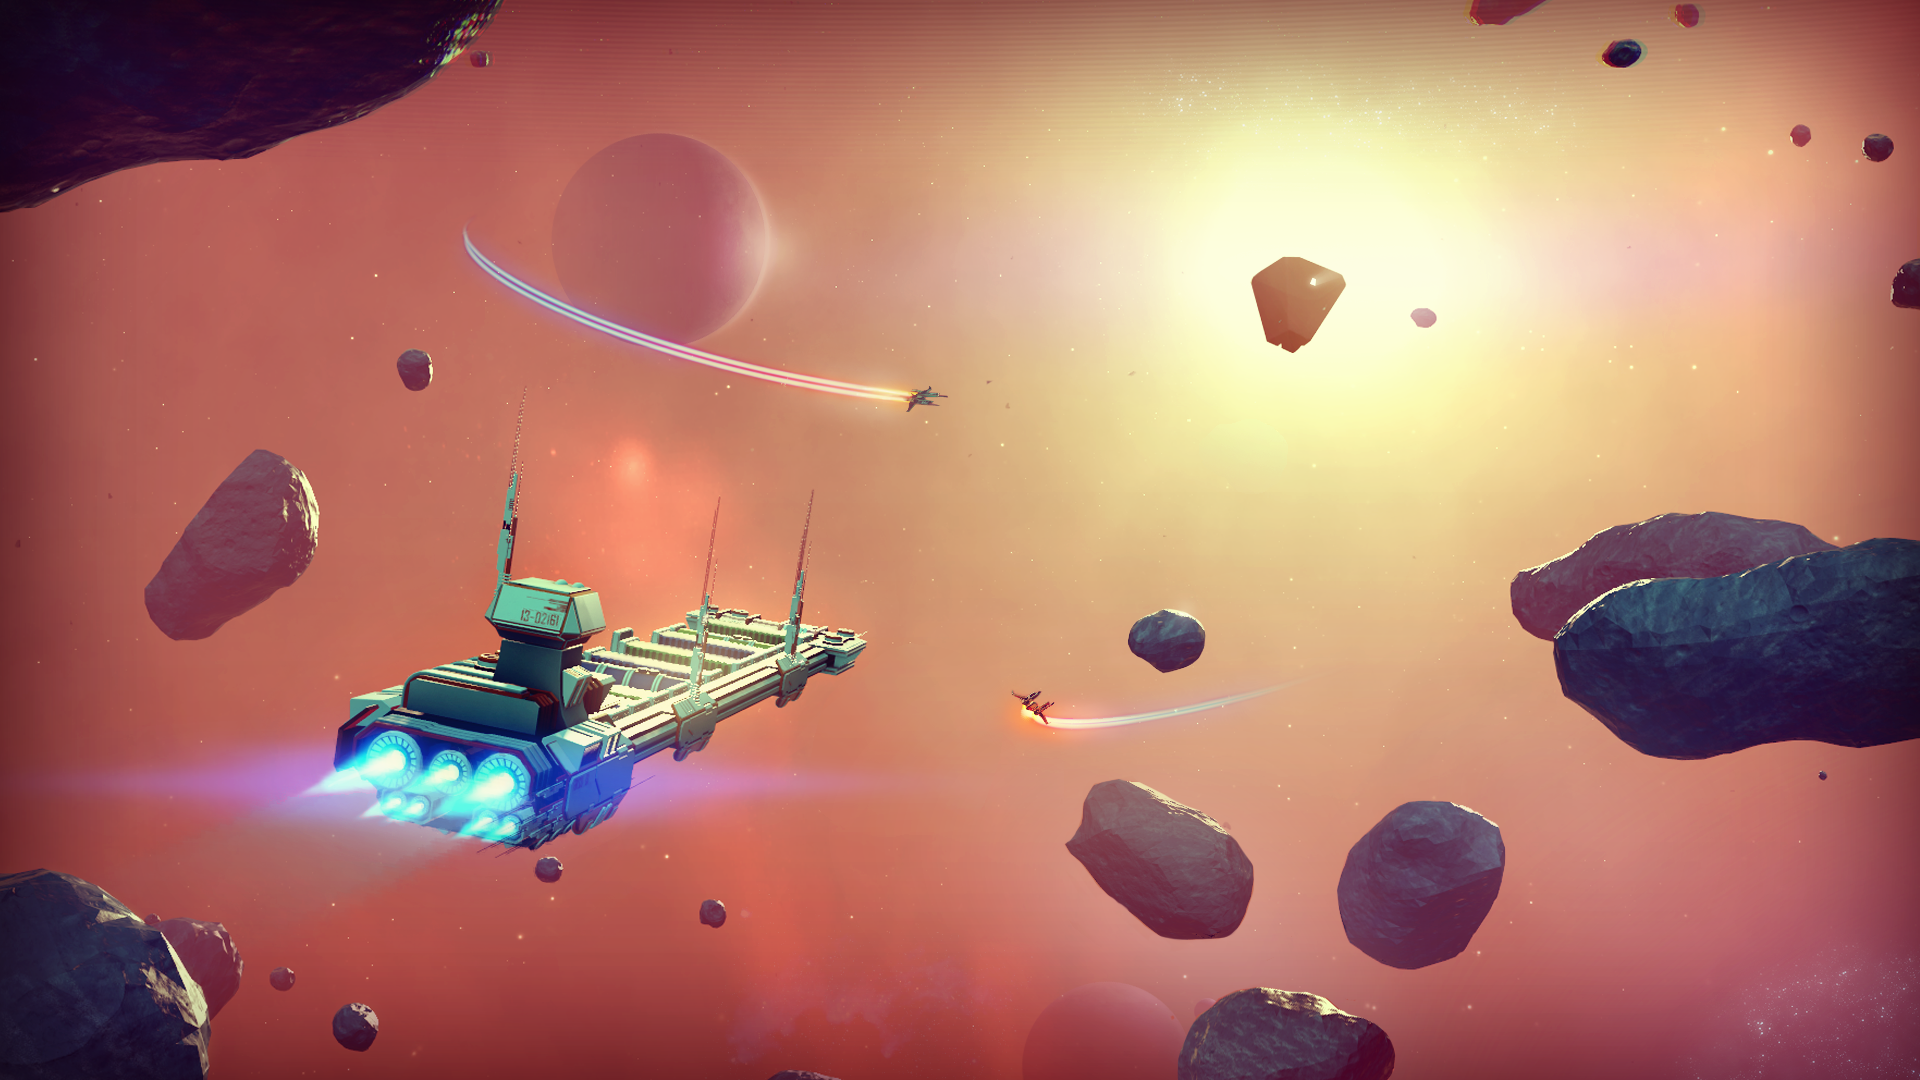 Artistry in Games GlattrecSystem No Man's Sky: Looking Deeper At One Of E3's Biggest Hits Features